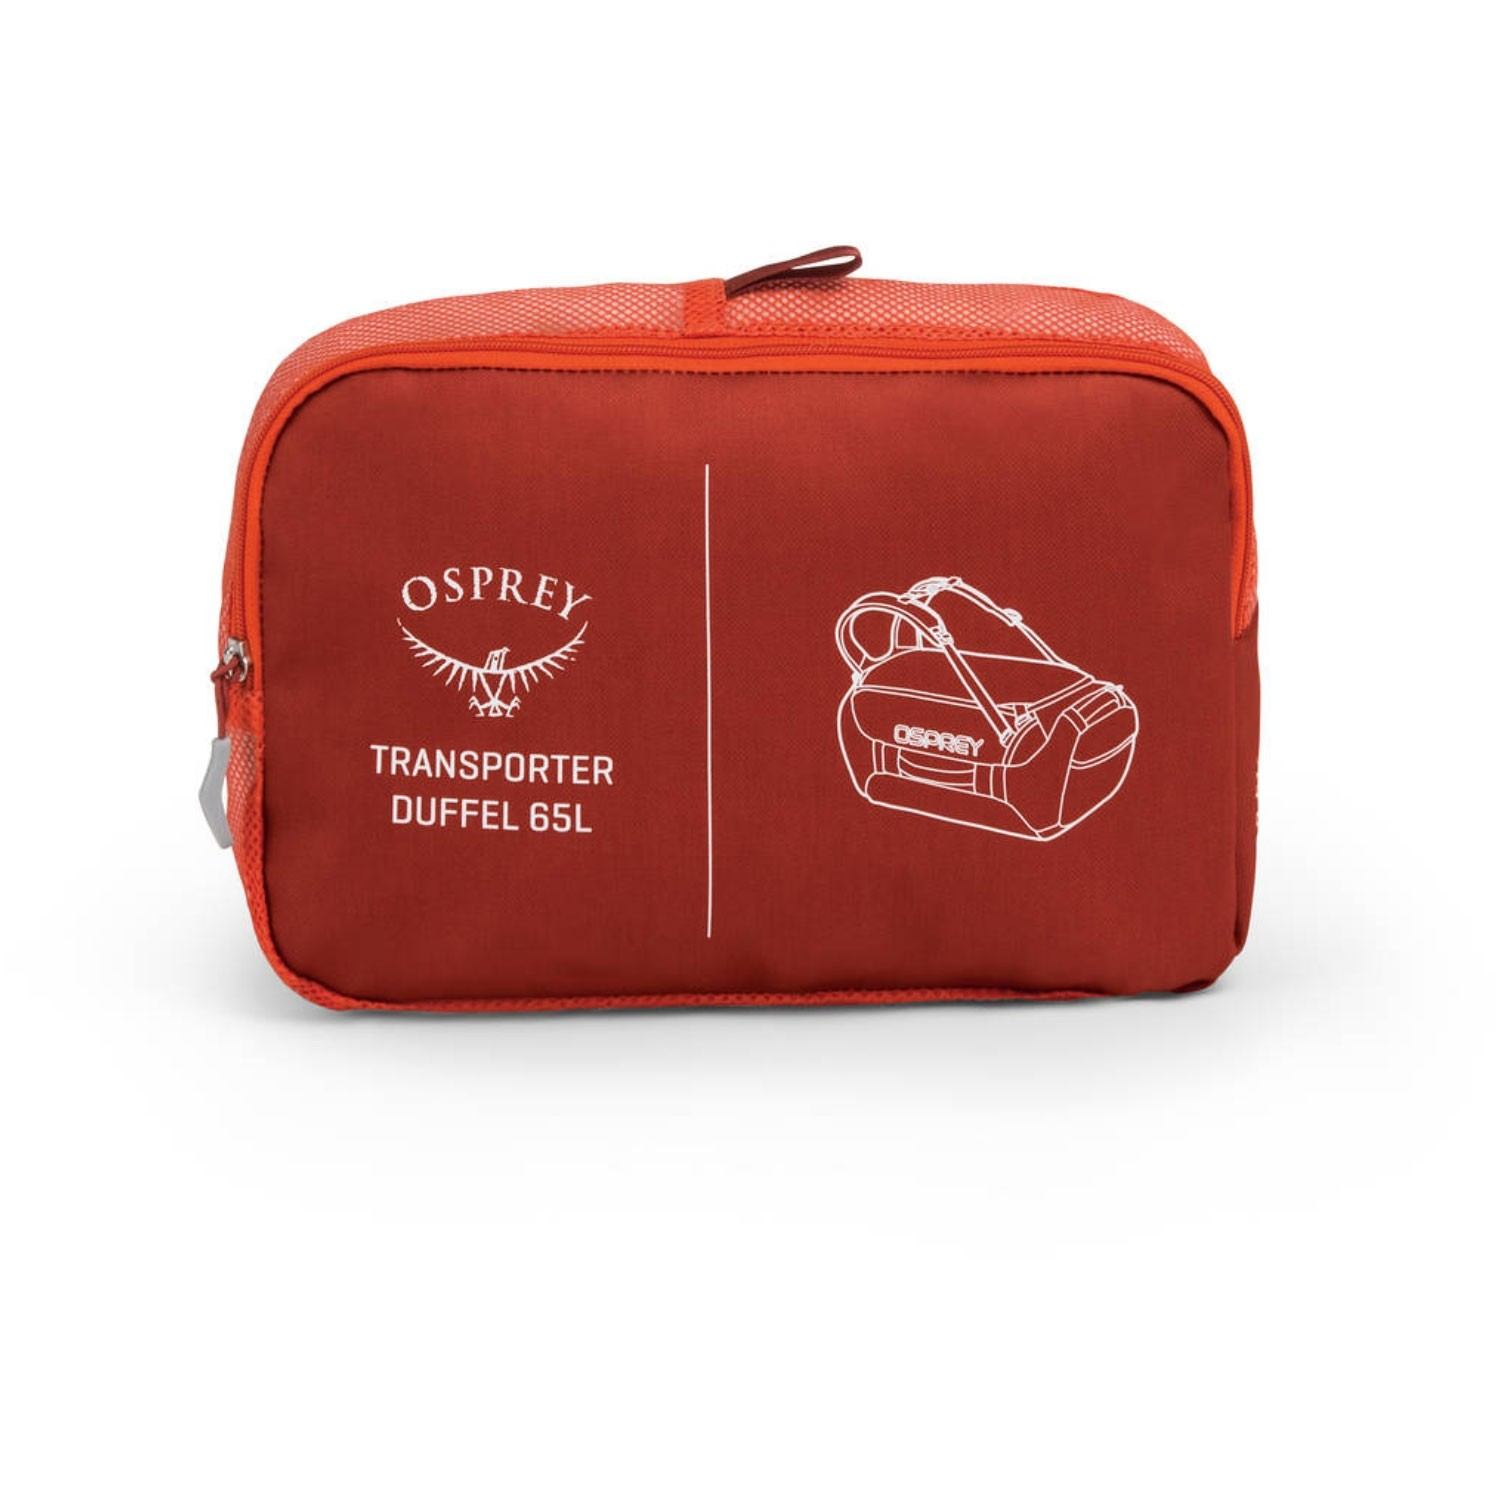 Osprey Transporter 65 Duffle Bag - Ruffian Red